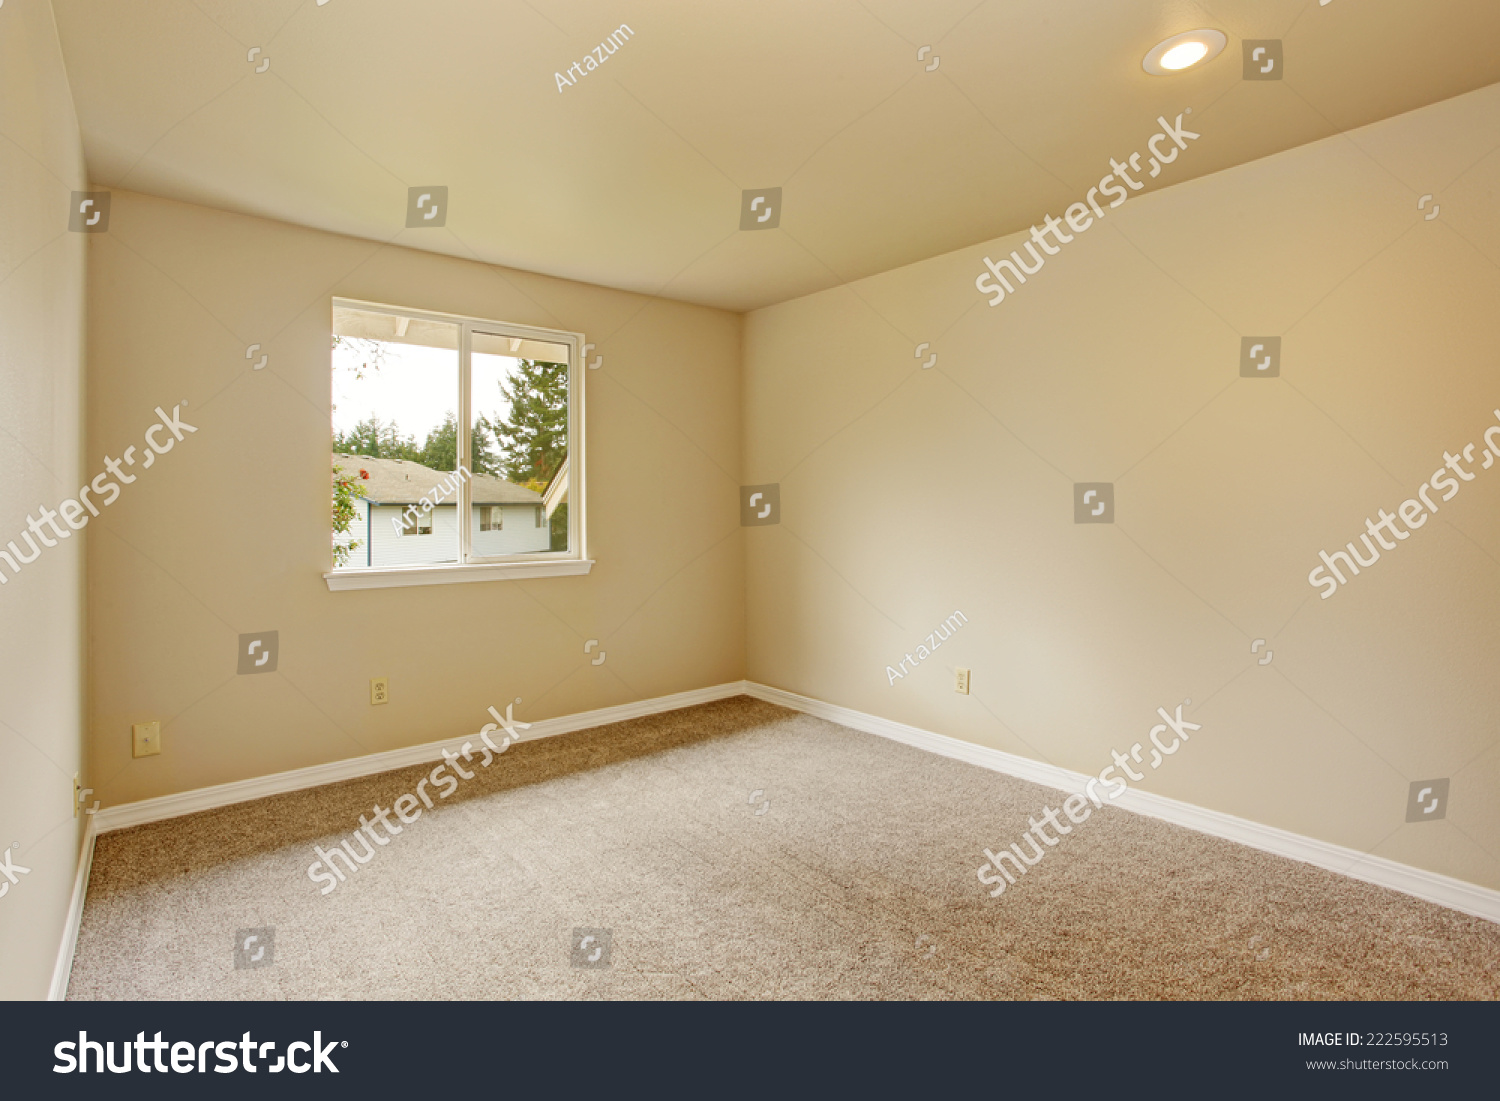 Bright empty room with one window, beige carpet floor and ivory ...